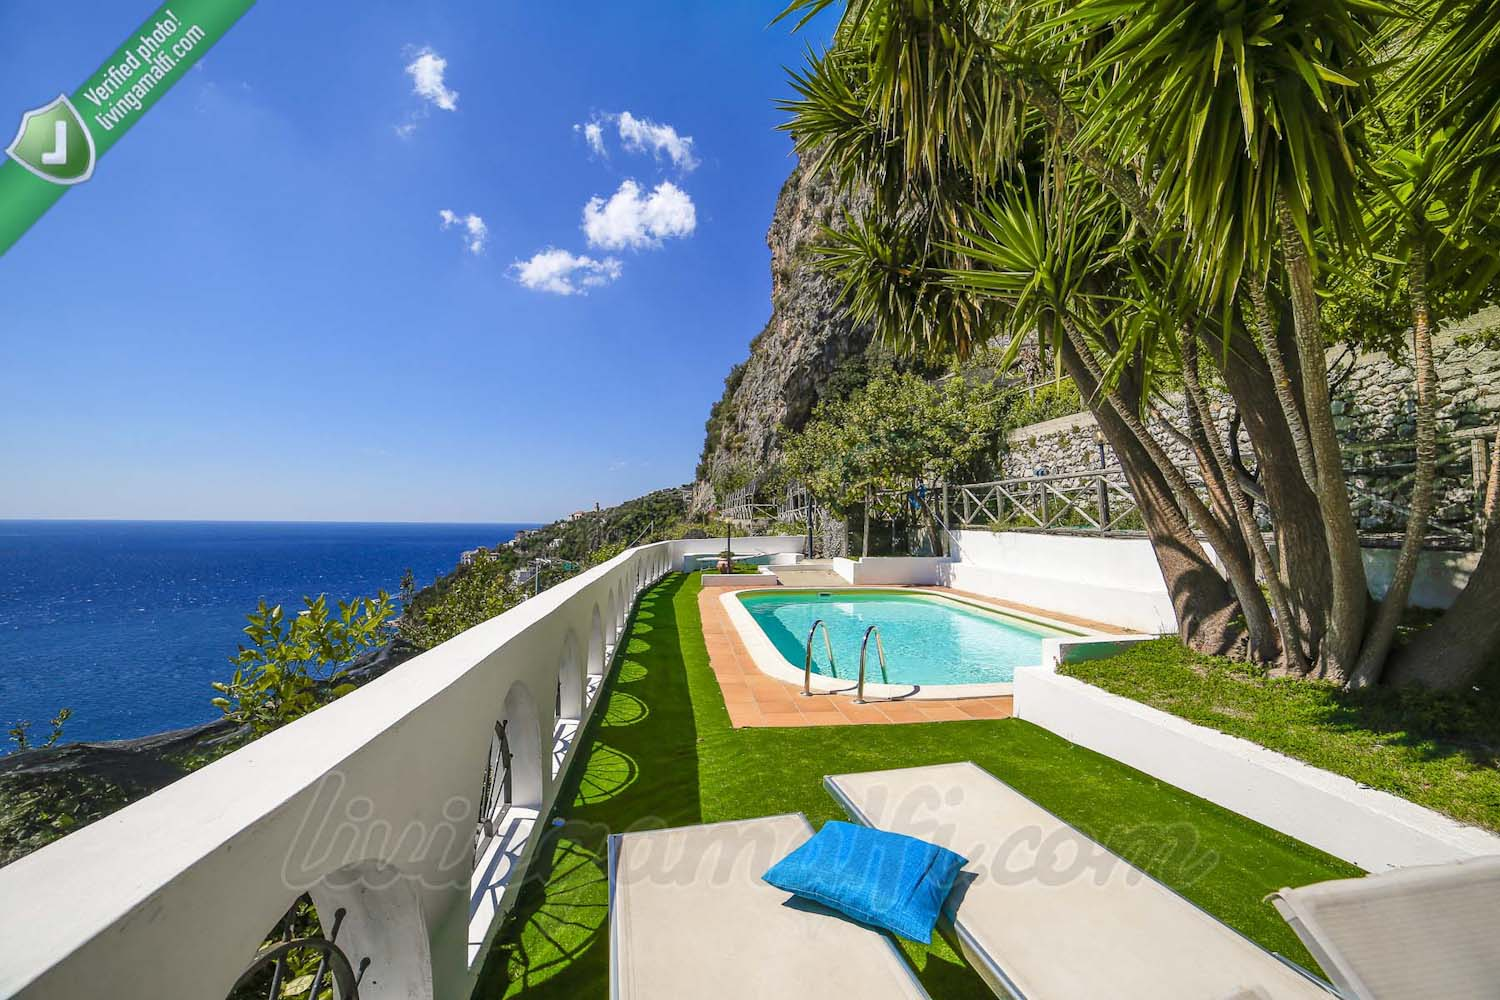 Vespero Villa with private pool and dependance apartment - Villa in Amalfi